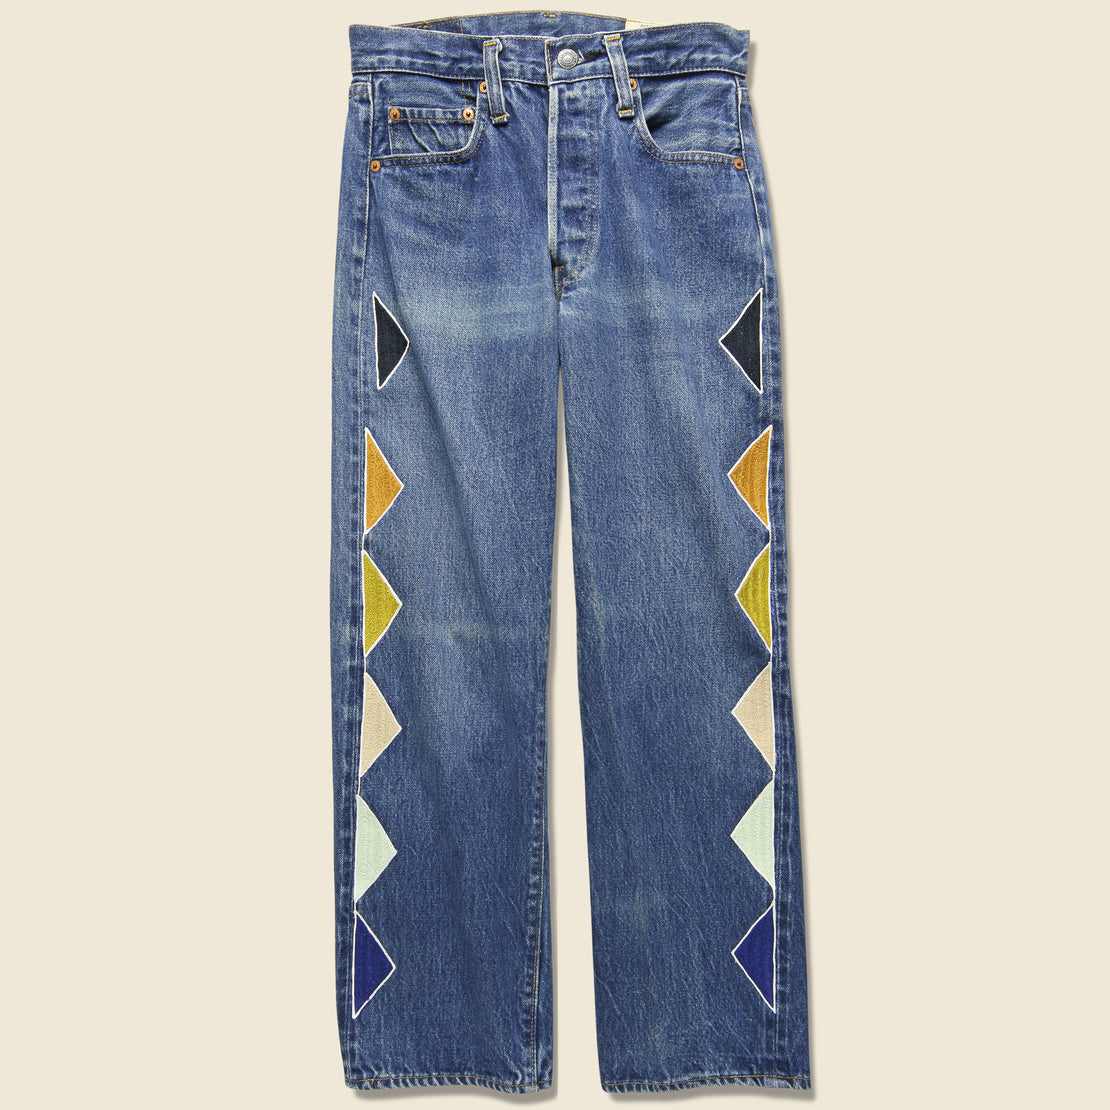 Ft Lonesome Triangle Pattern Levi's 501 Jean - Multi